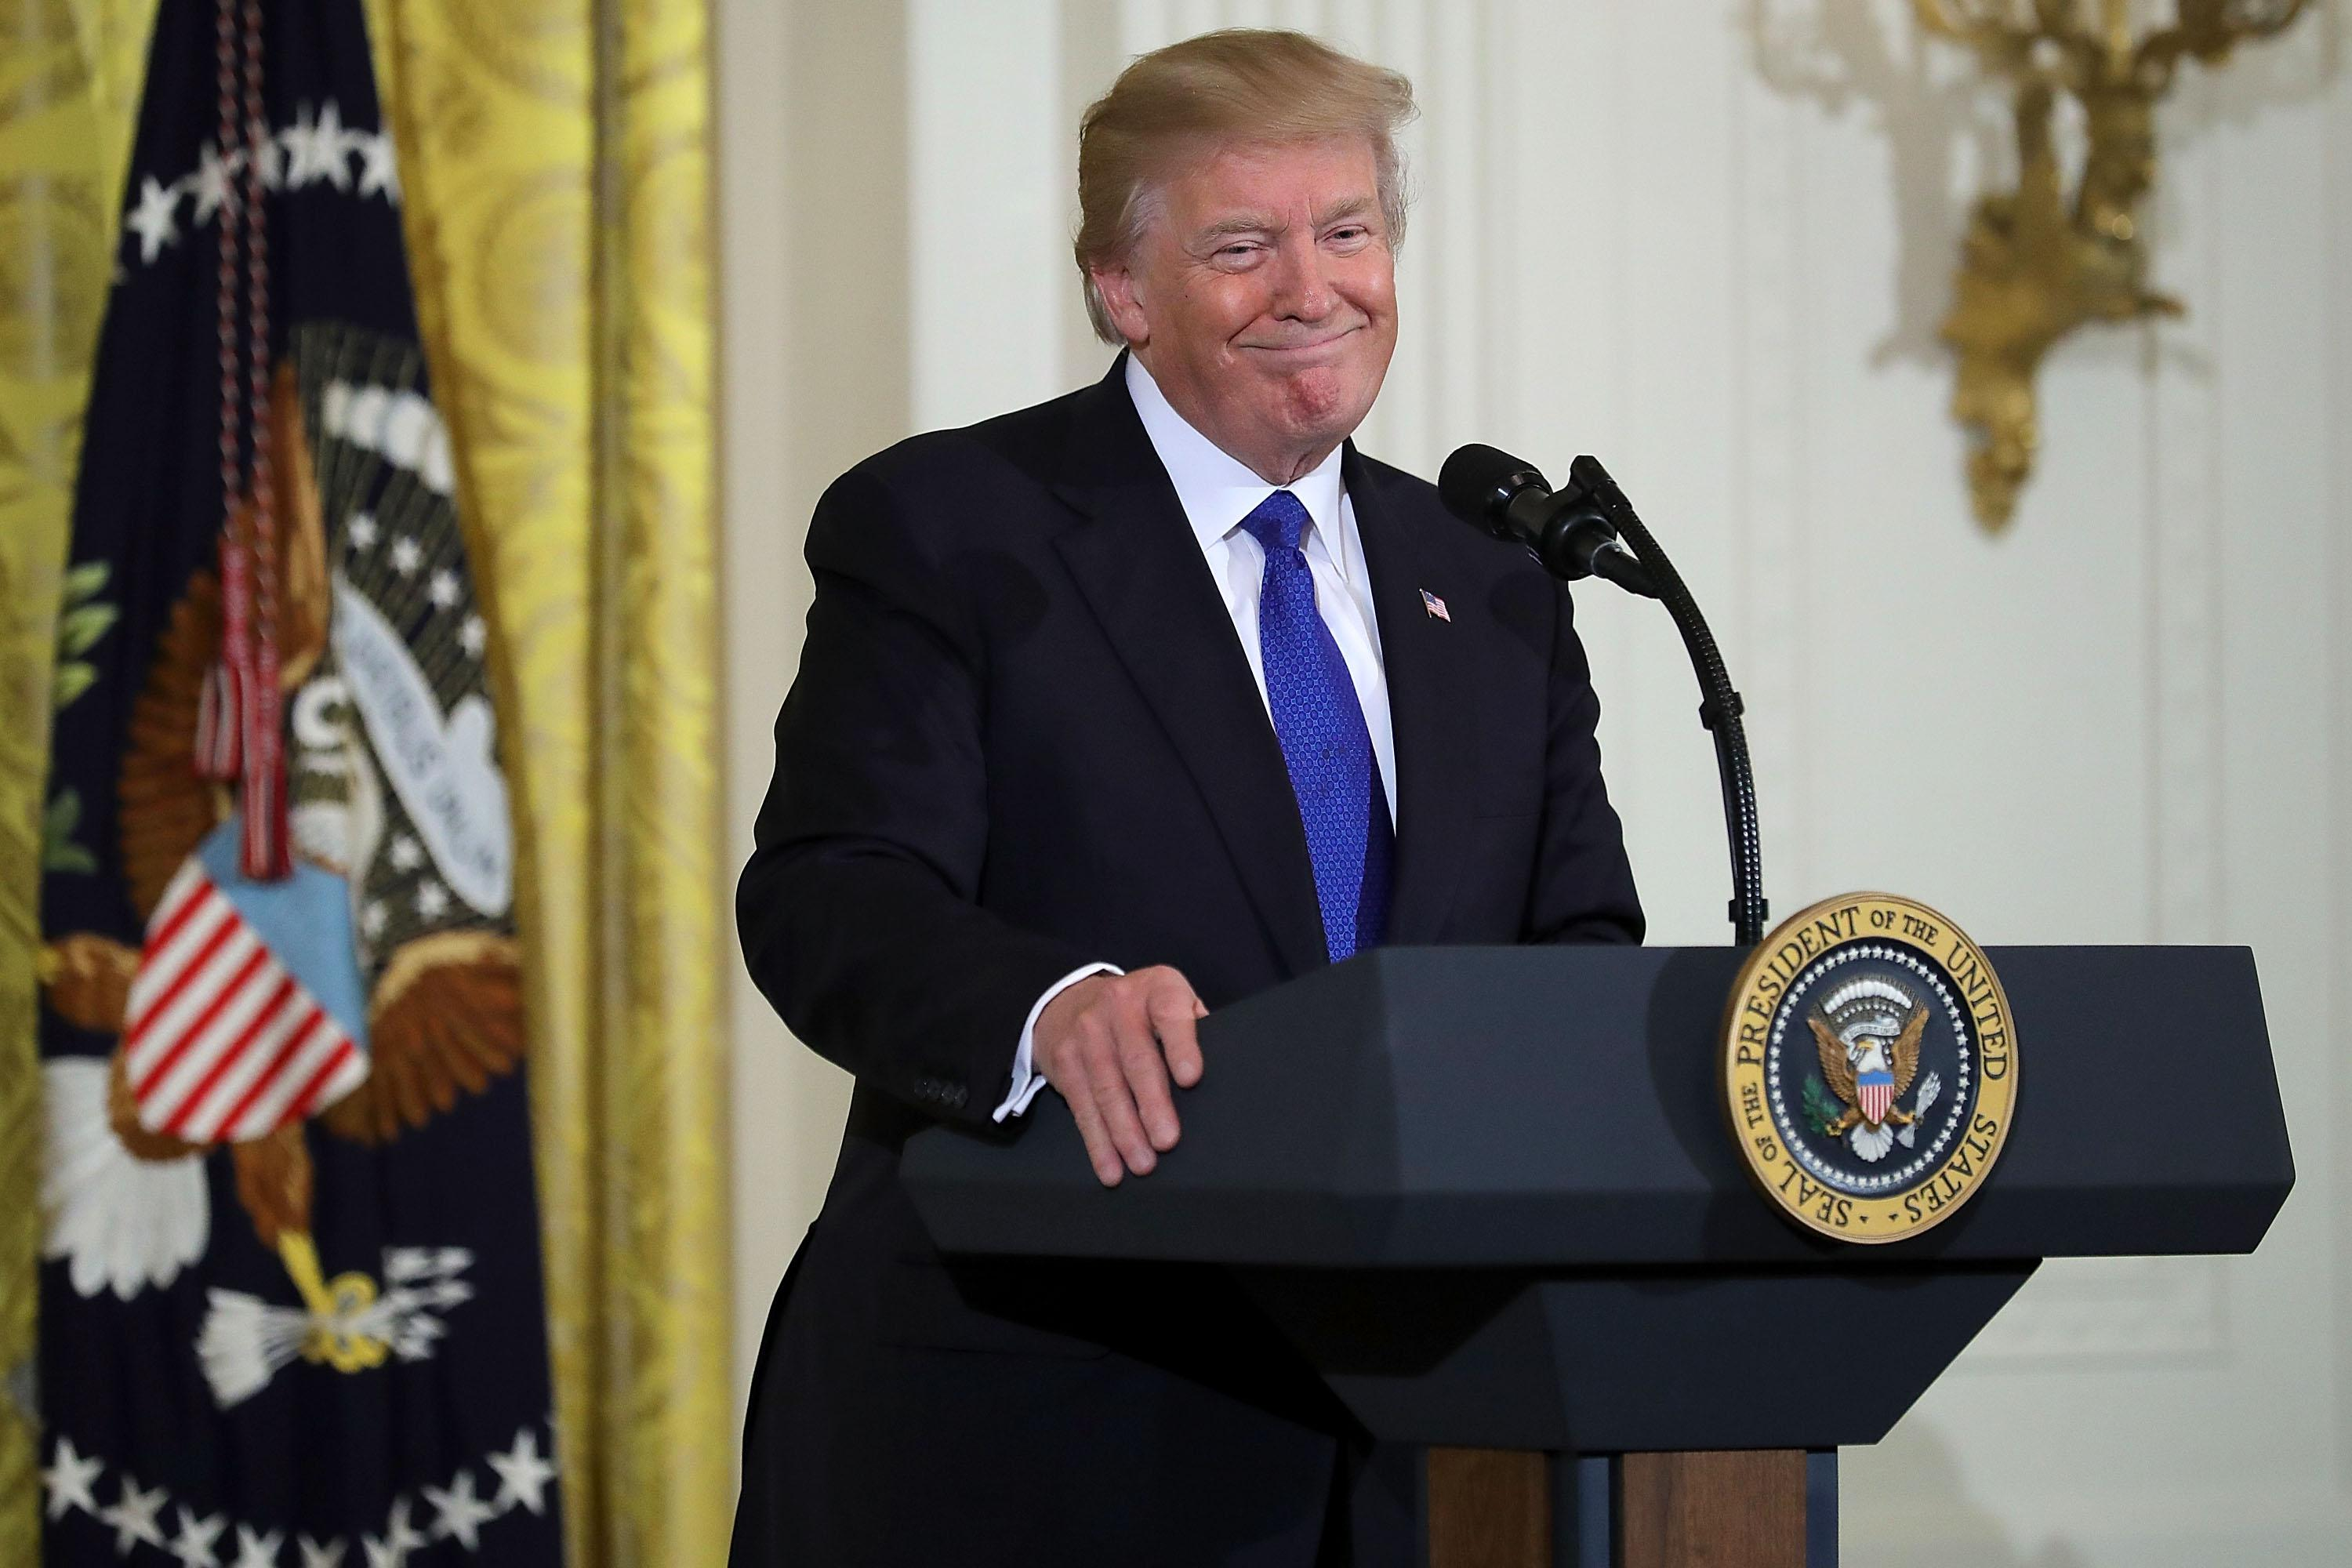 President Donald Trump speaks in the East Room of the White House January 24, 2018 in Washington, DC. According to U.S. Conference of Mayors President Mitch Landrieu, representatives from the conference were scheduled to meet with Trump but several cancelled due to the administration's 'decision to threaten mayors and demonize immigrants.' The conference, a non-partisan organization of cities with a population of 30,000 or larger, is holding its annual meeting this week in Washington.